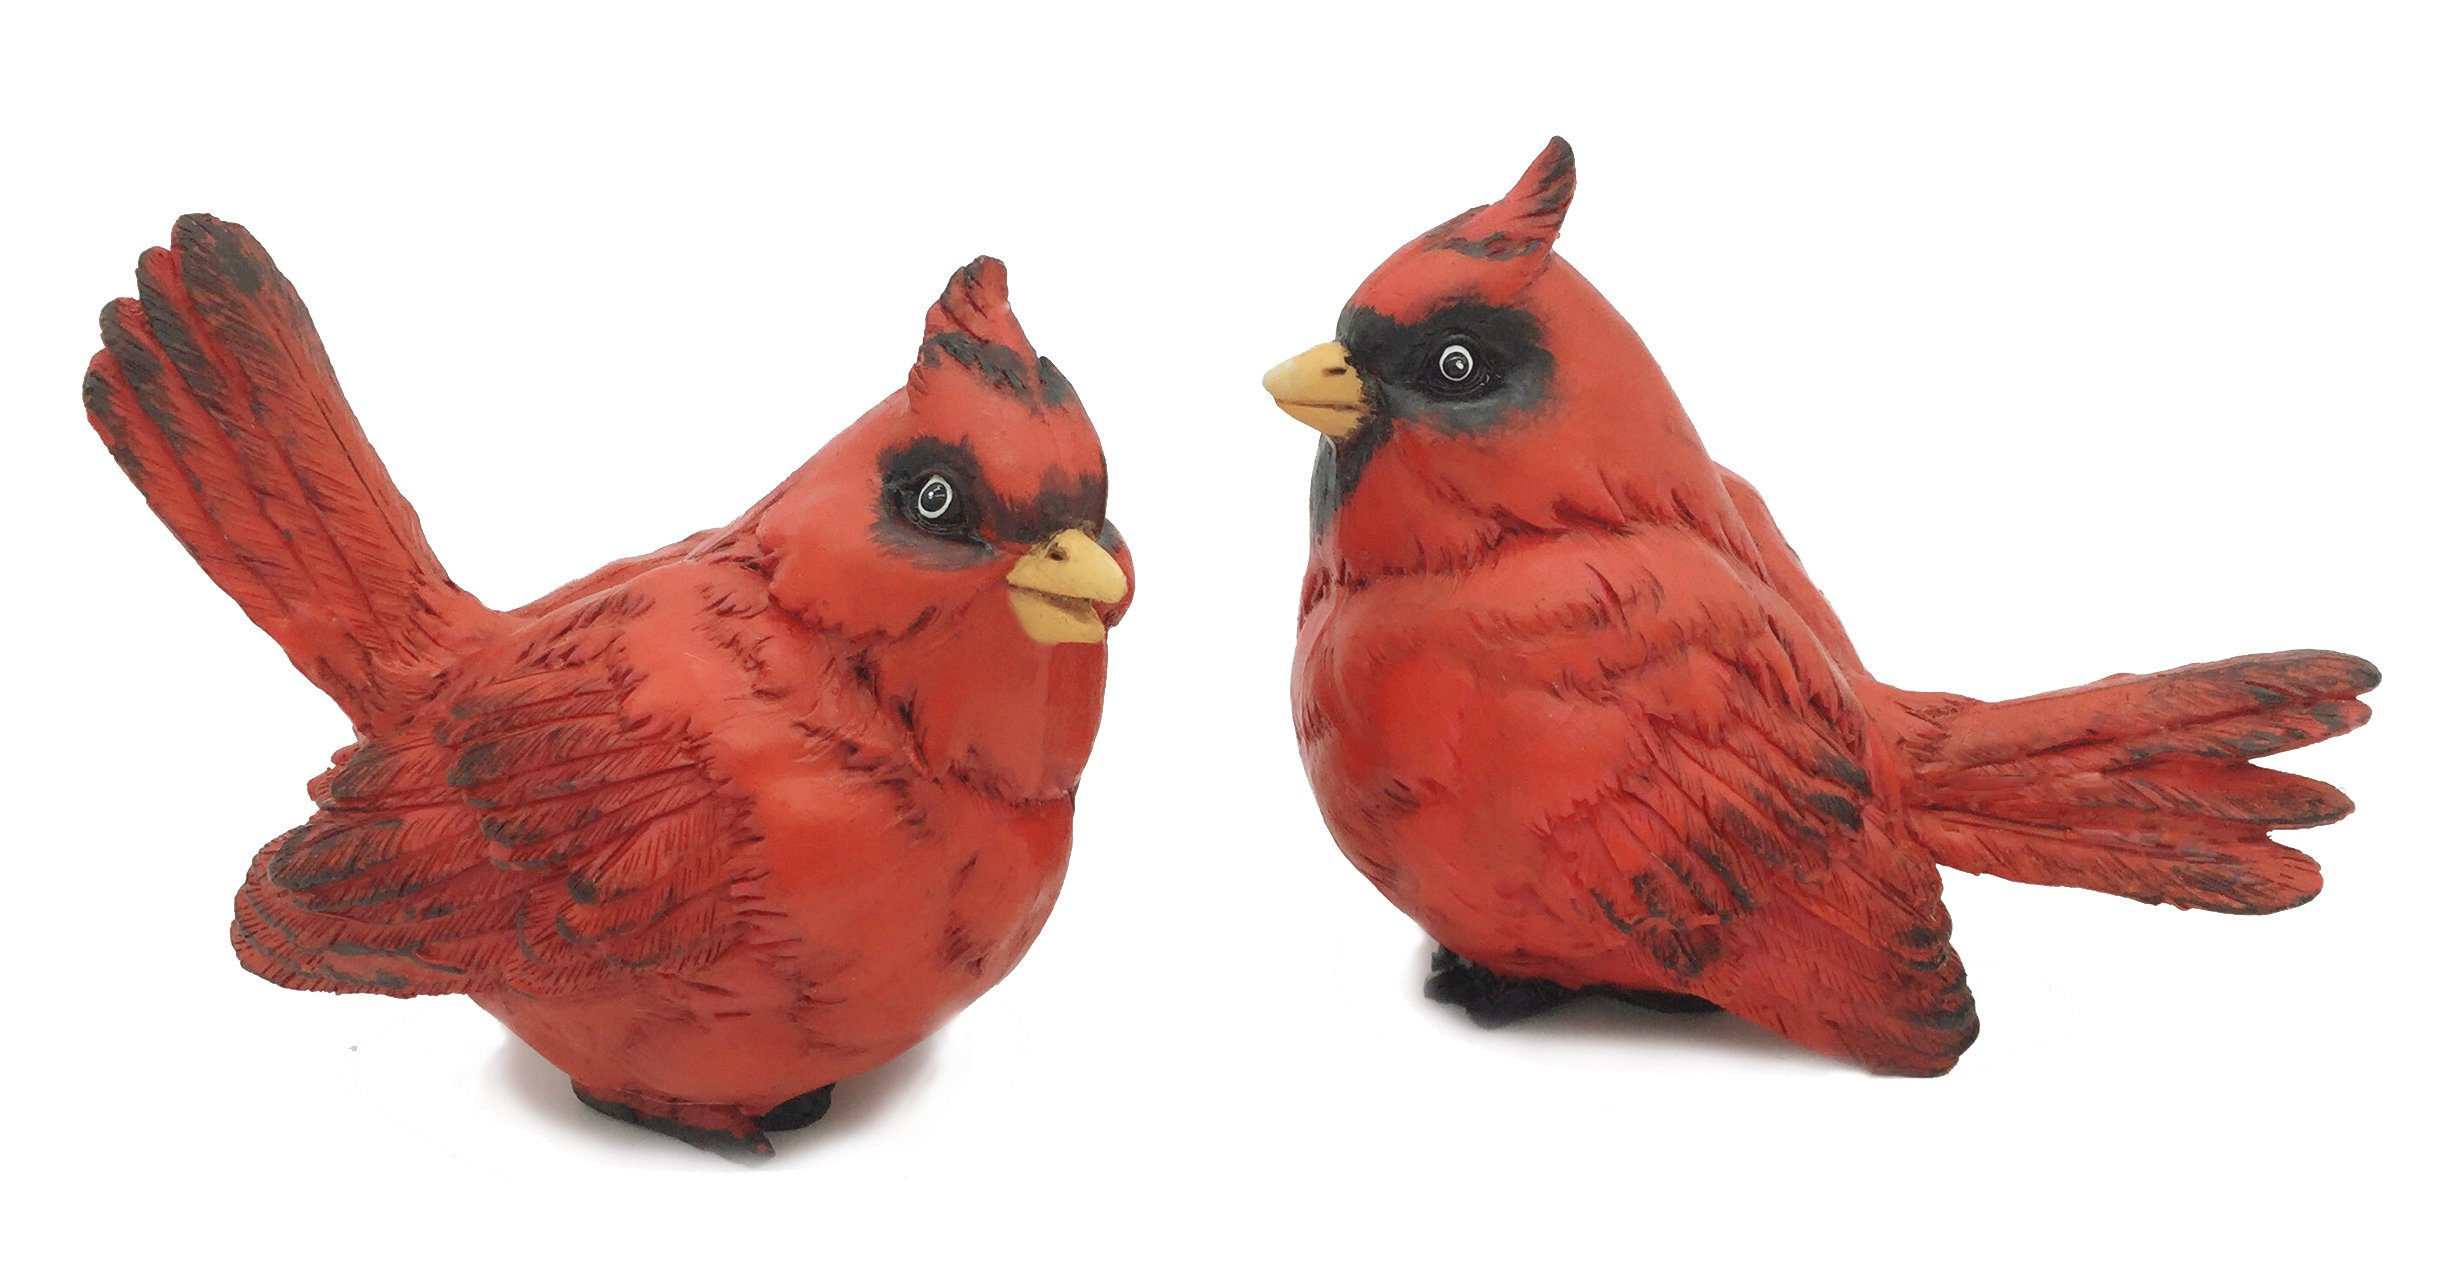 FICITI G105394 Cardinal Figurine Birds Decoration - Set of 2-4 Inches High